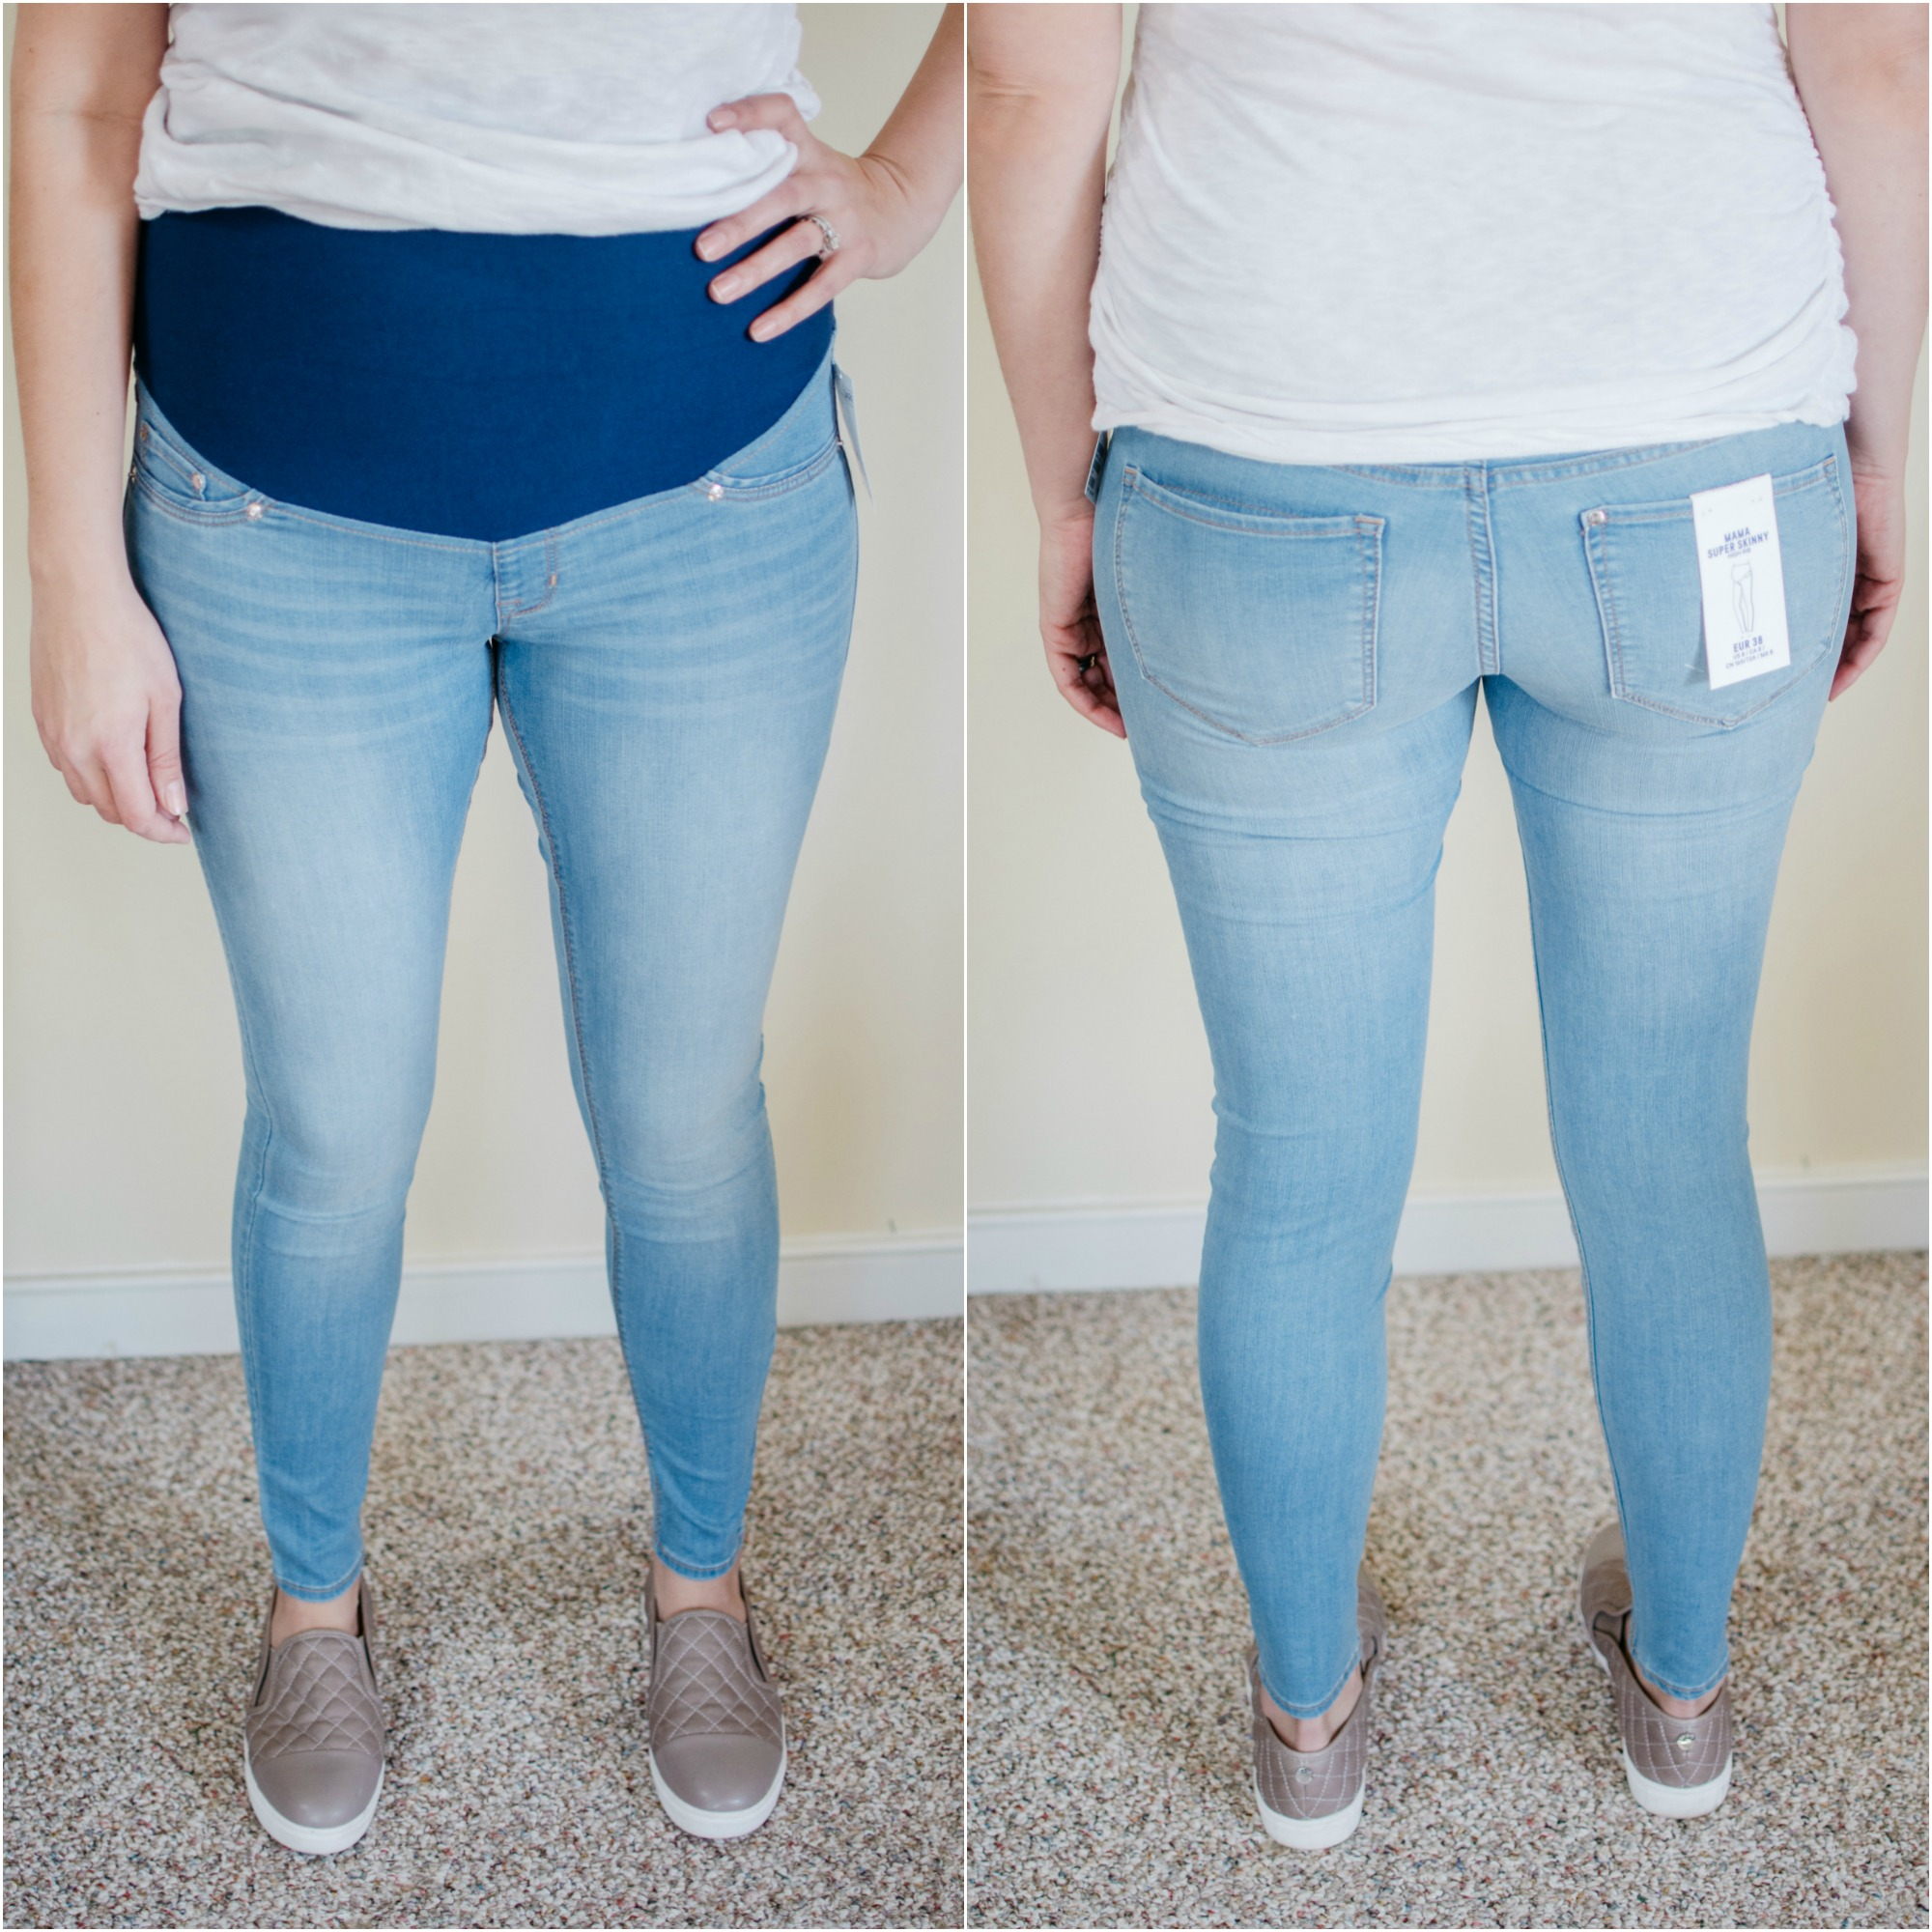 9023d1904fe5c H&M Mama Super Skinny Jeans Review - H&M Maternity Jeans | See reviews of  over 15